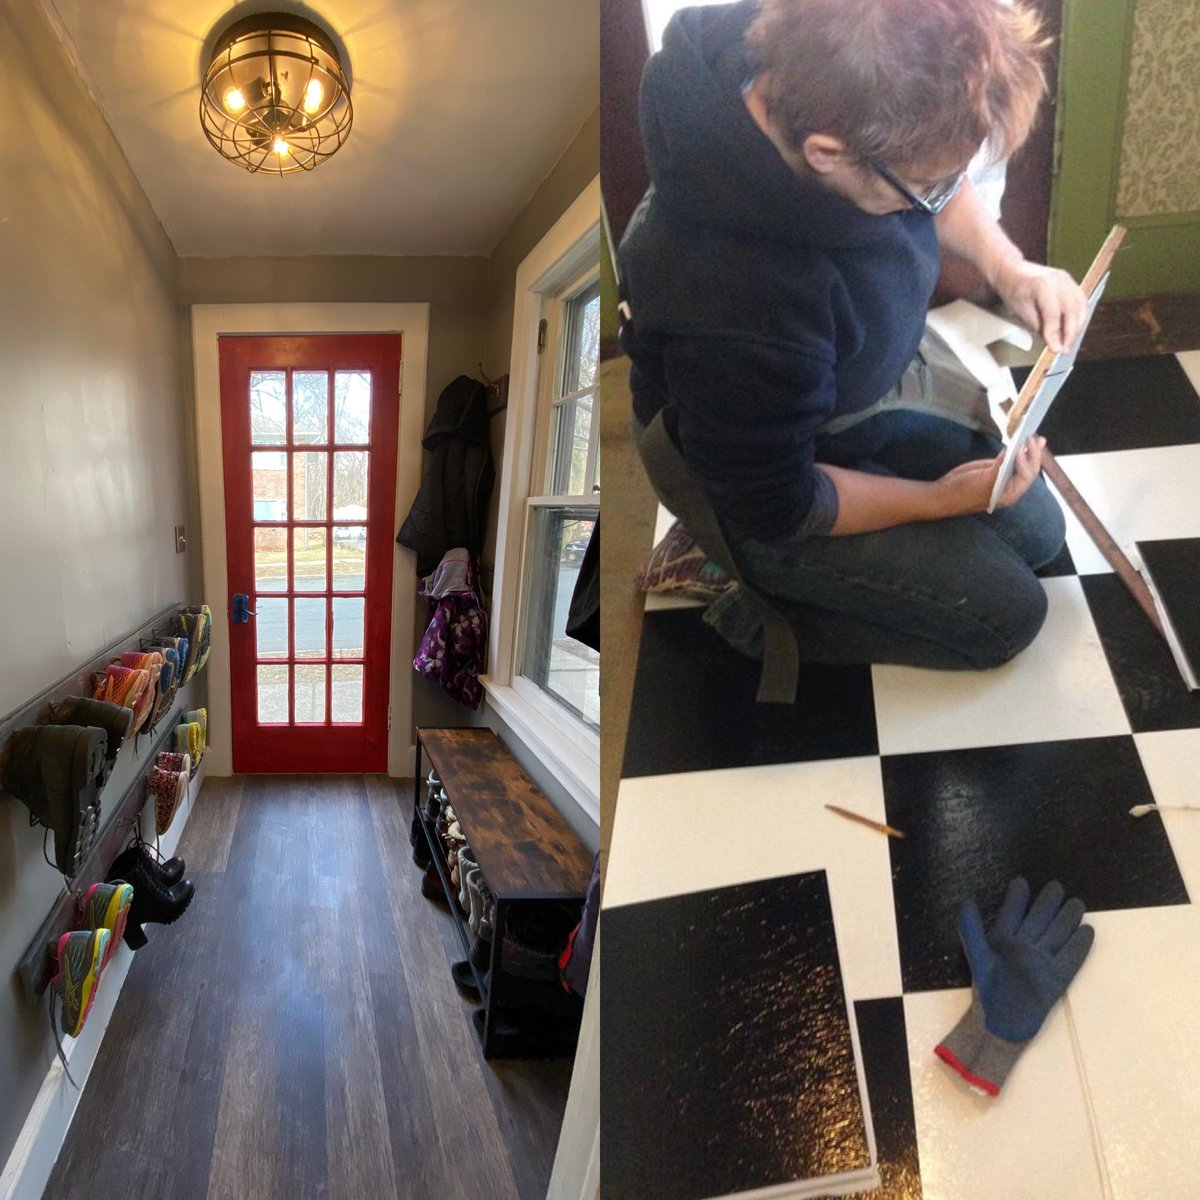 Almost at the end of the road—time to hang some art. Here is a pic of the beginning of the Reno, mud room edition, and where it is now. #upcycle #renovation #oldhouse #diy #mudroompic.twitter.com/IngtjBJTNK